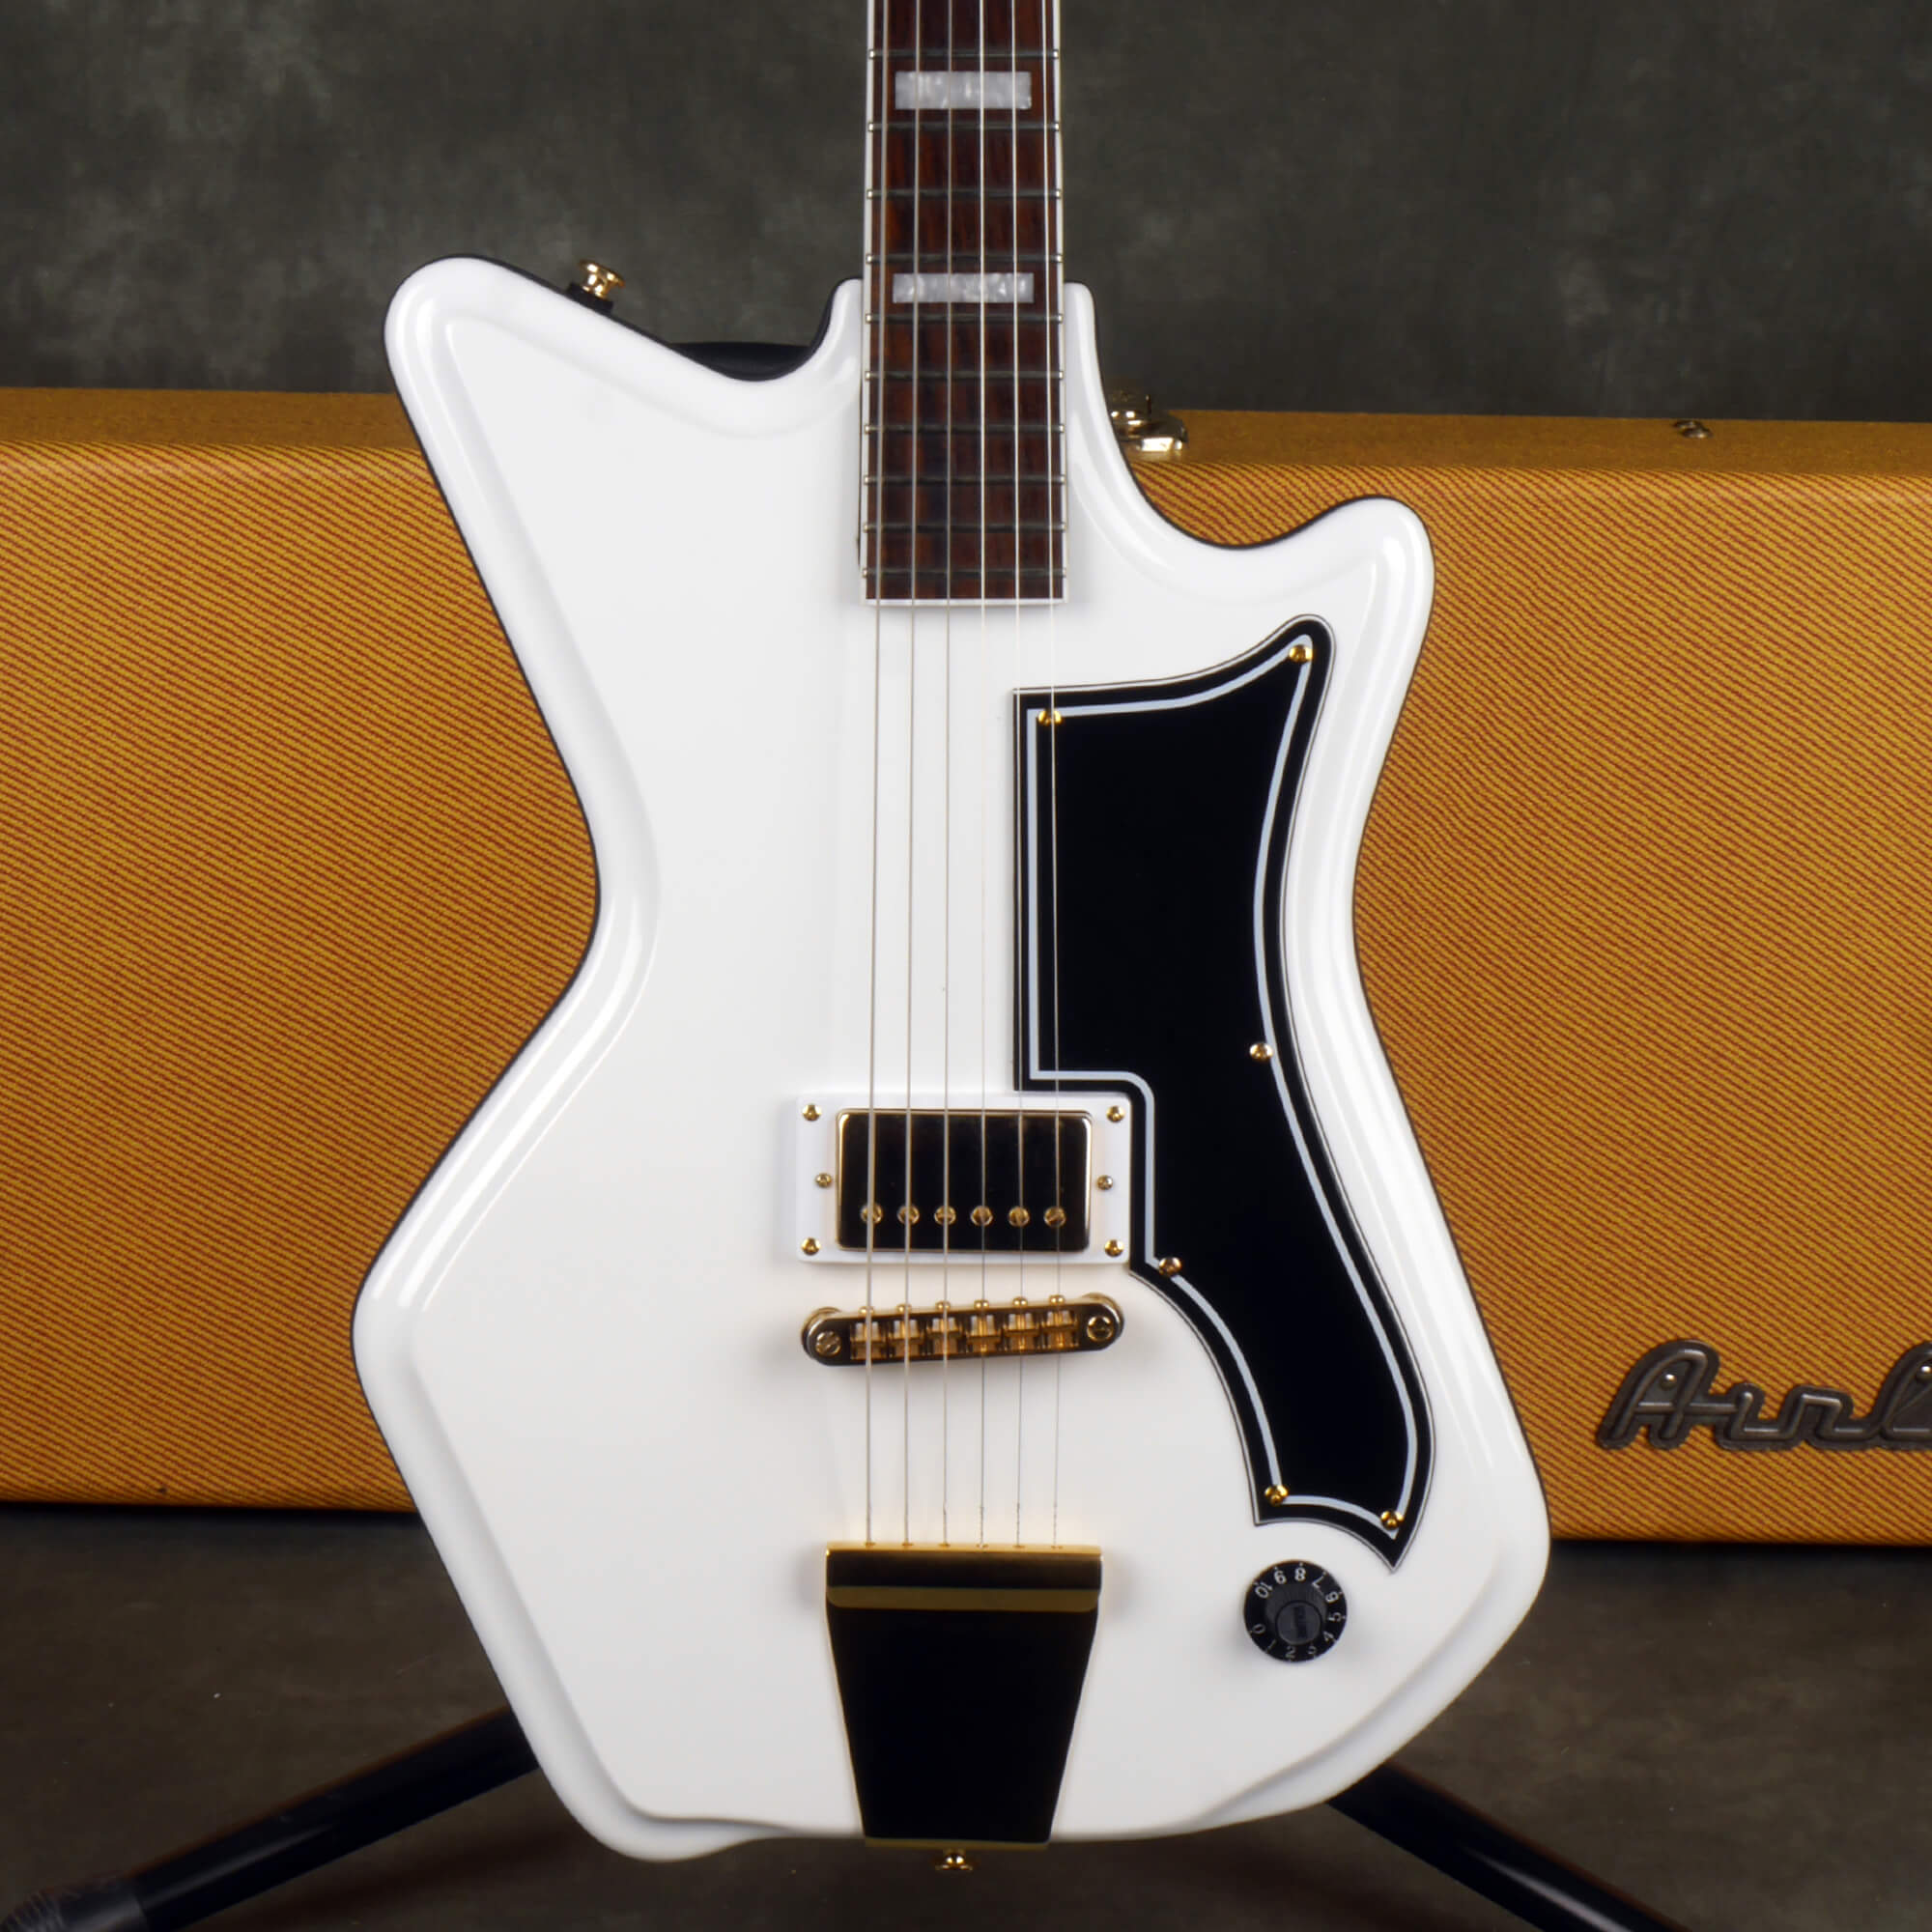 Eastwood Airline 59 1P Electric Guitar - White Ltd Ed w/Hard Case - 2nd Hand